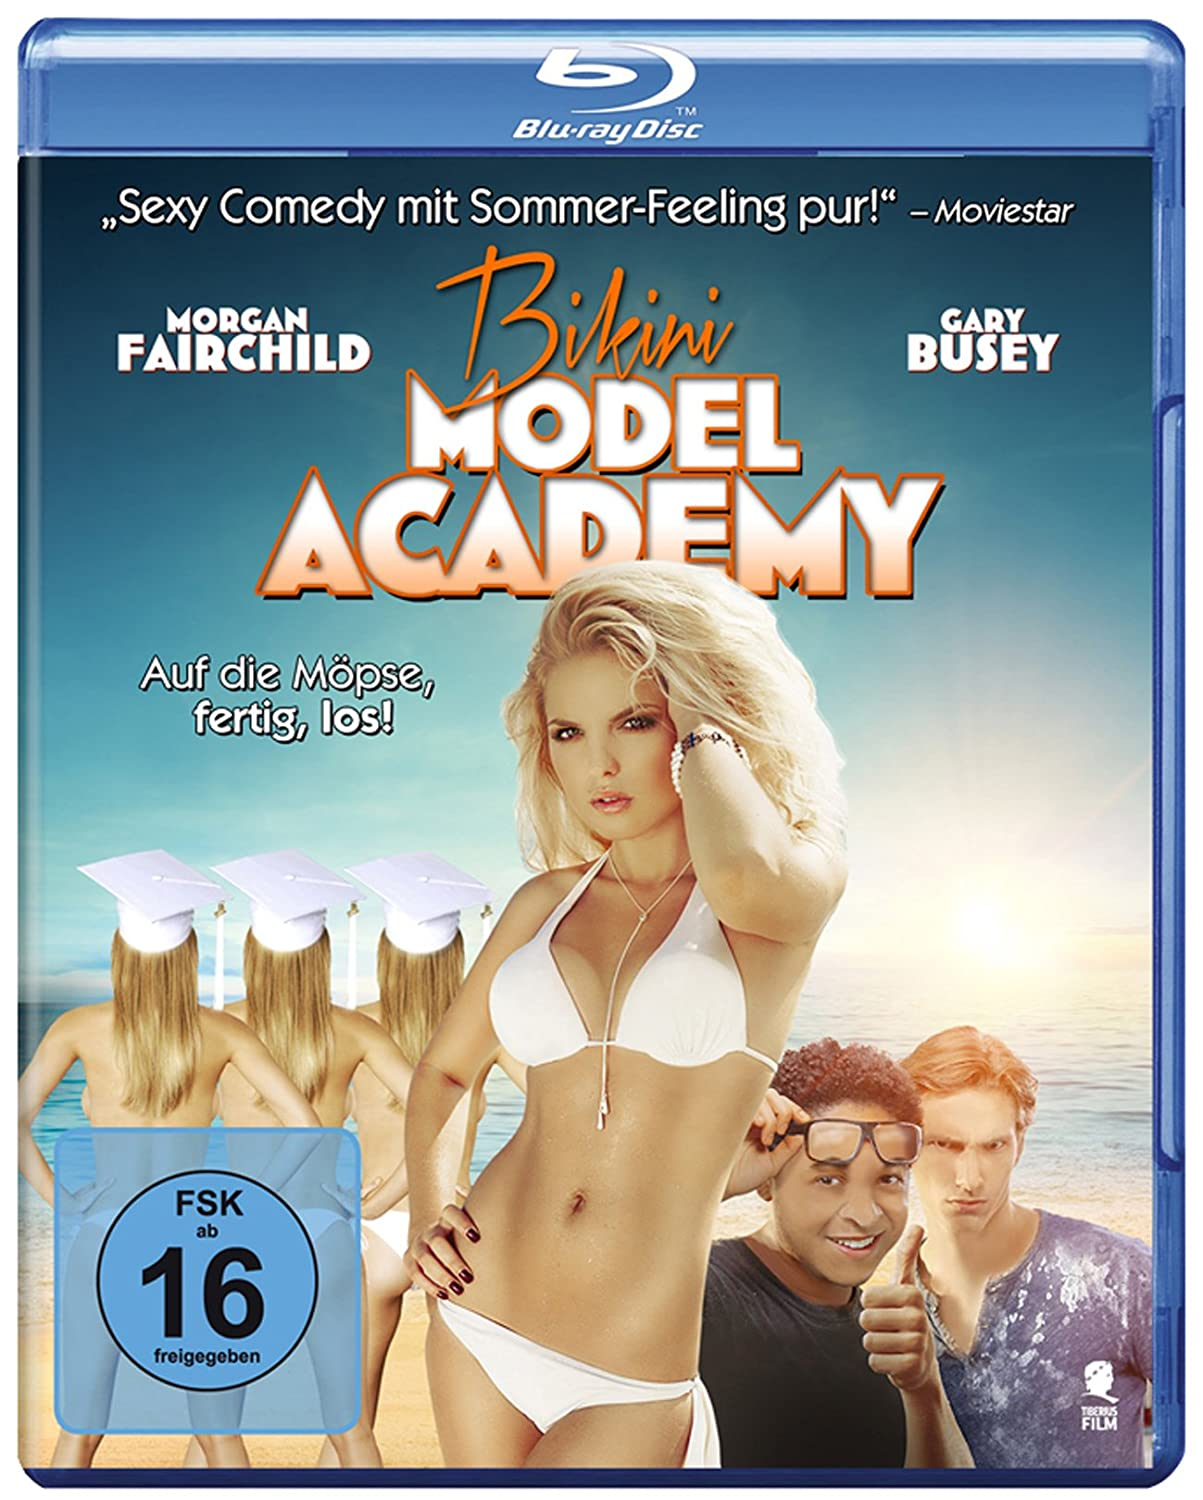 Image result for Bikini Model Academy(2015)dvd cover